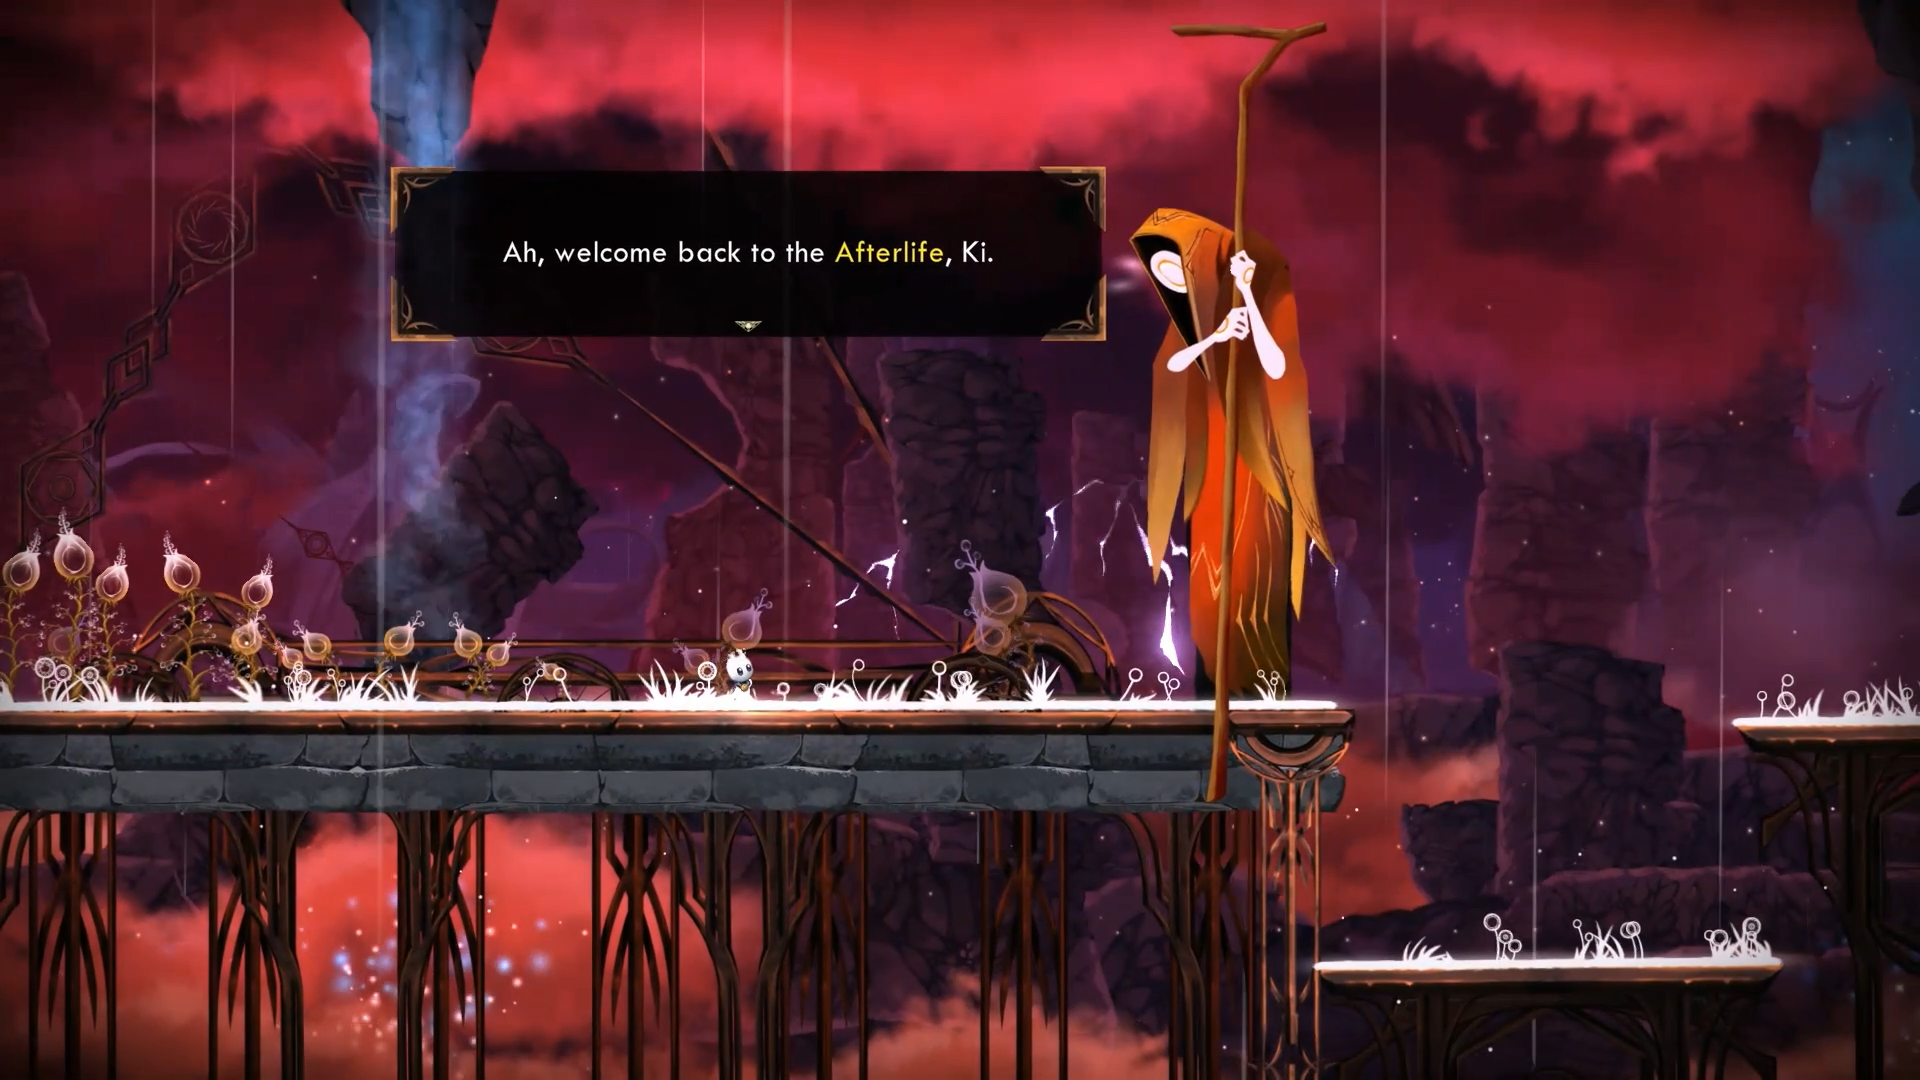 Check out the trailer at the bottom of the page to see the Soulflame mechanic in action.